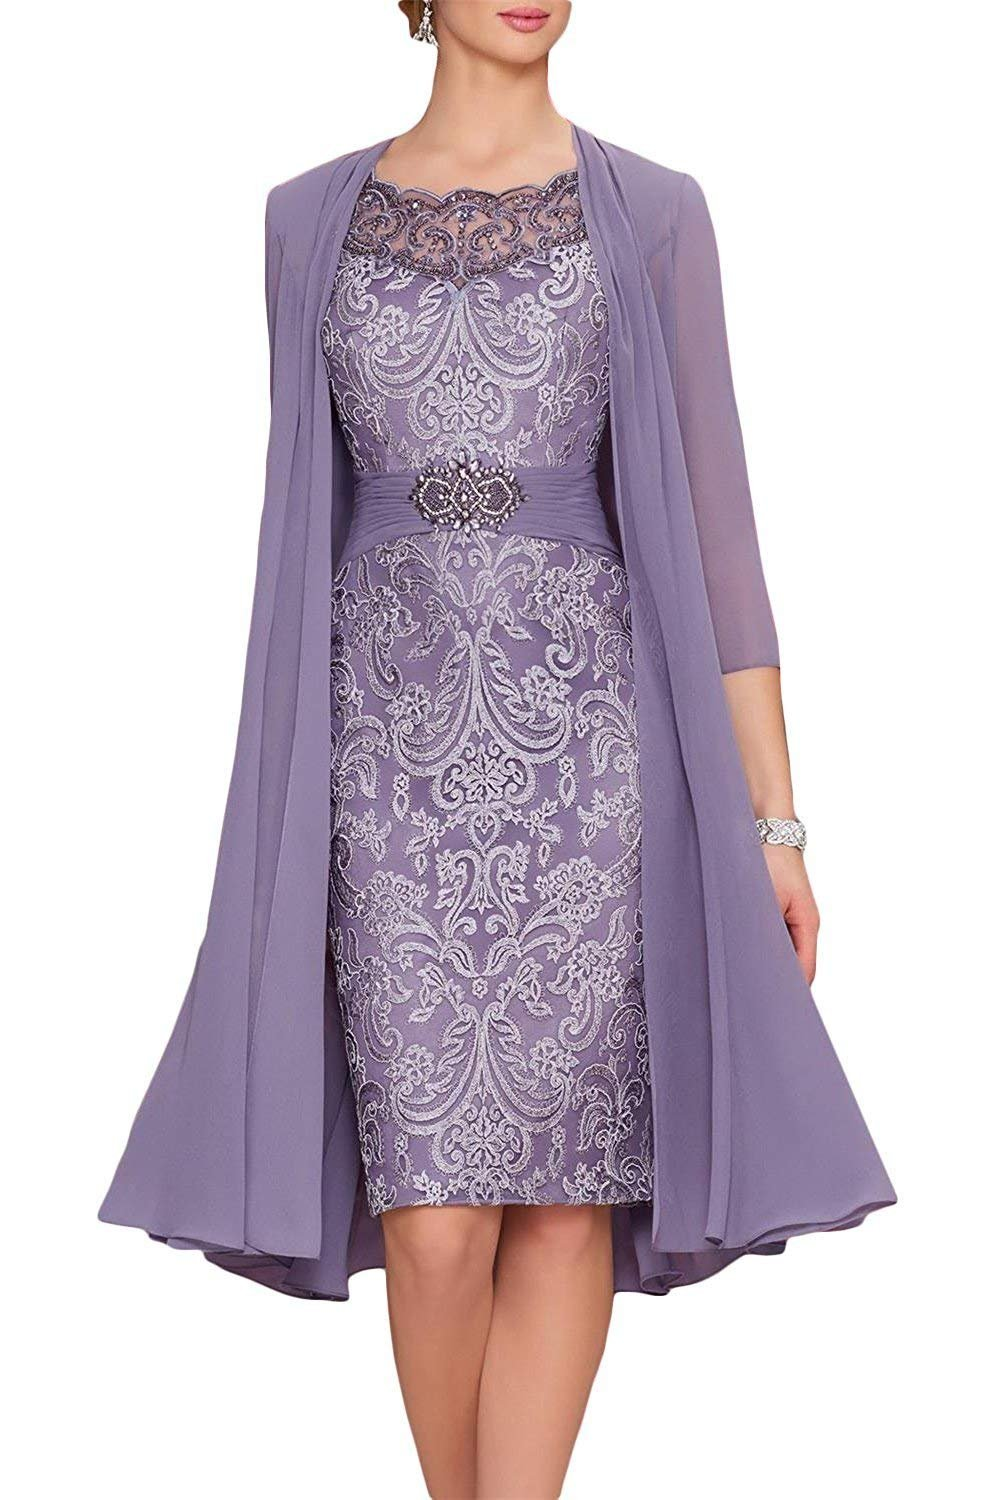 ec666d4025b4 Newdeve Chiffon Mother of The Bride Dresses Tea Length Two Pieces with  Jacket Purple